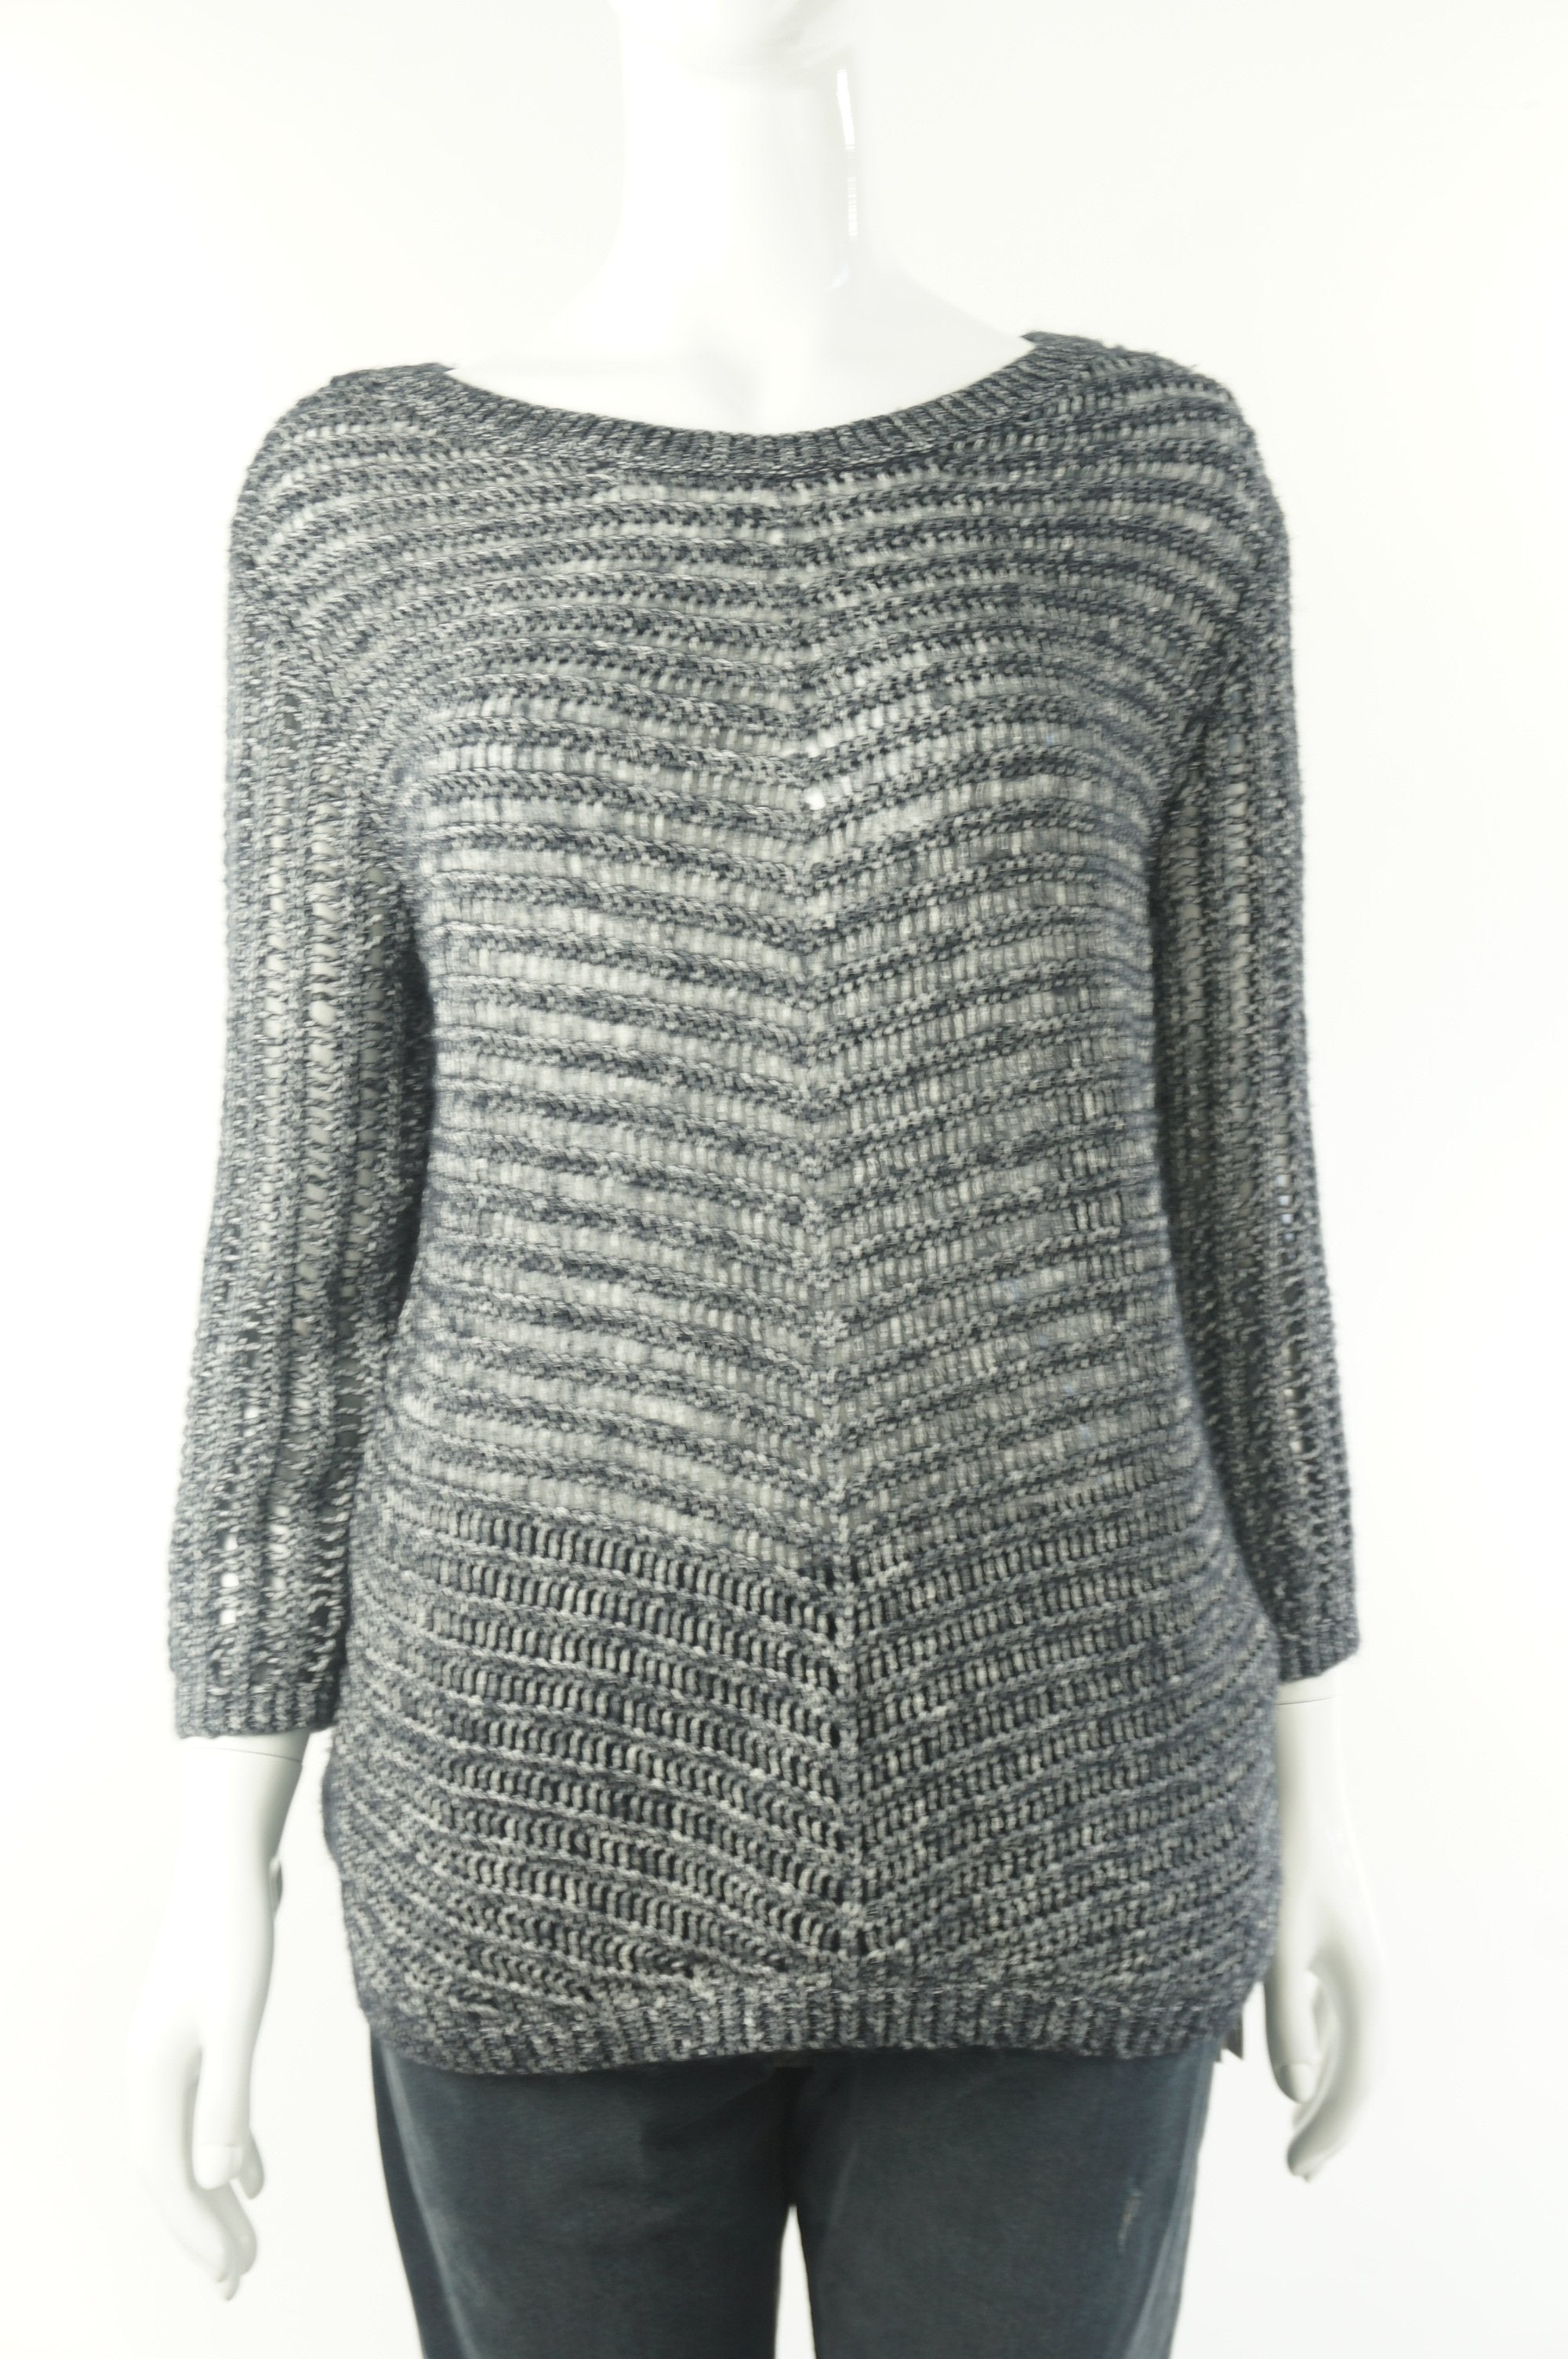 A|X Armani Exchange Loose Knit Pullover Sweater, Relaxed fit with dropped shoulder. A to go for everyday layering., Grey, 78% cotton, 22% acrylic, women's Tops, women's Grey Tops, A|X Armani Exchange women's Tops, Armarni exchange women's knitted sweater, women's knitted sweater for spring, Armani exchange loose knit sweater